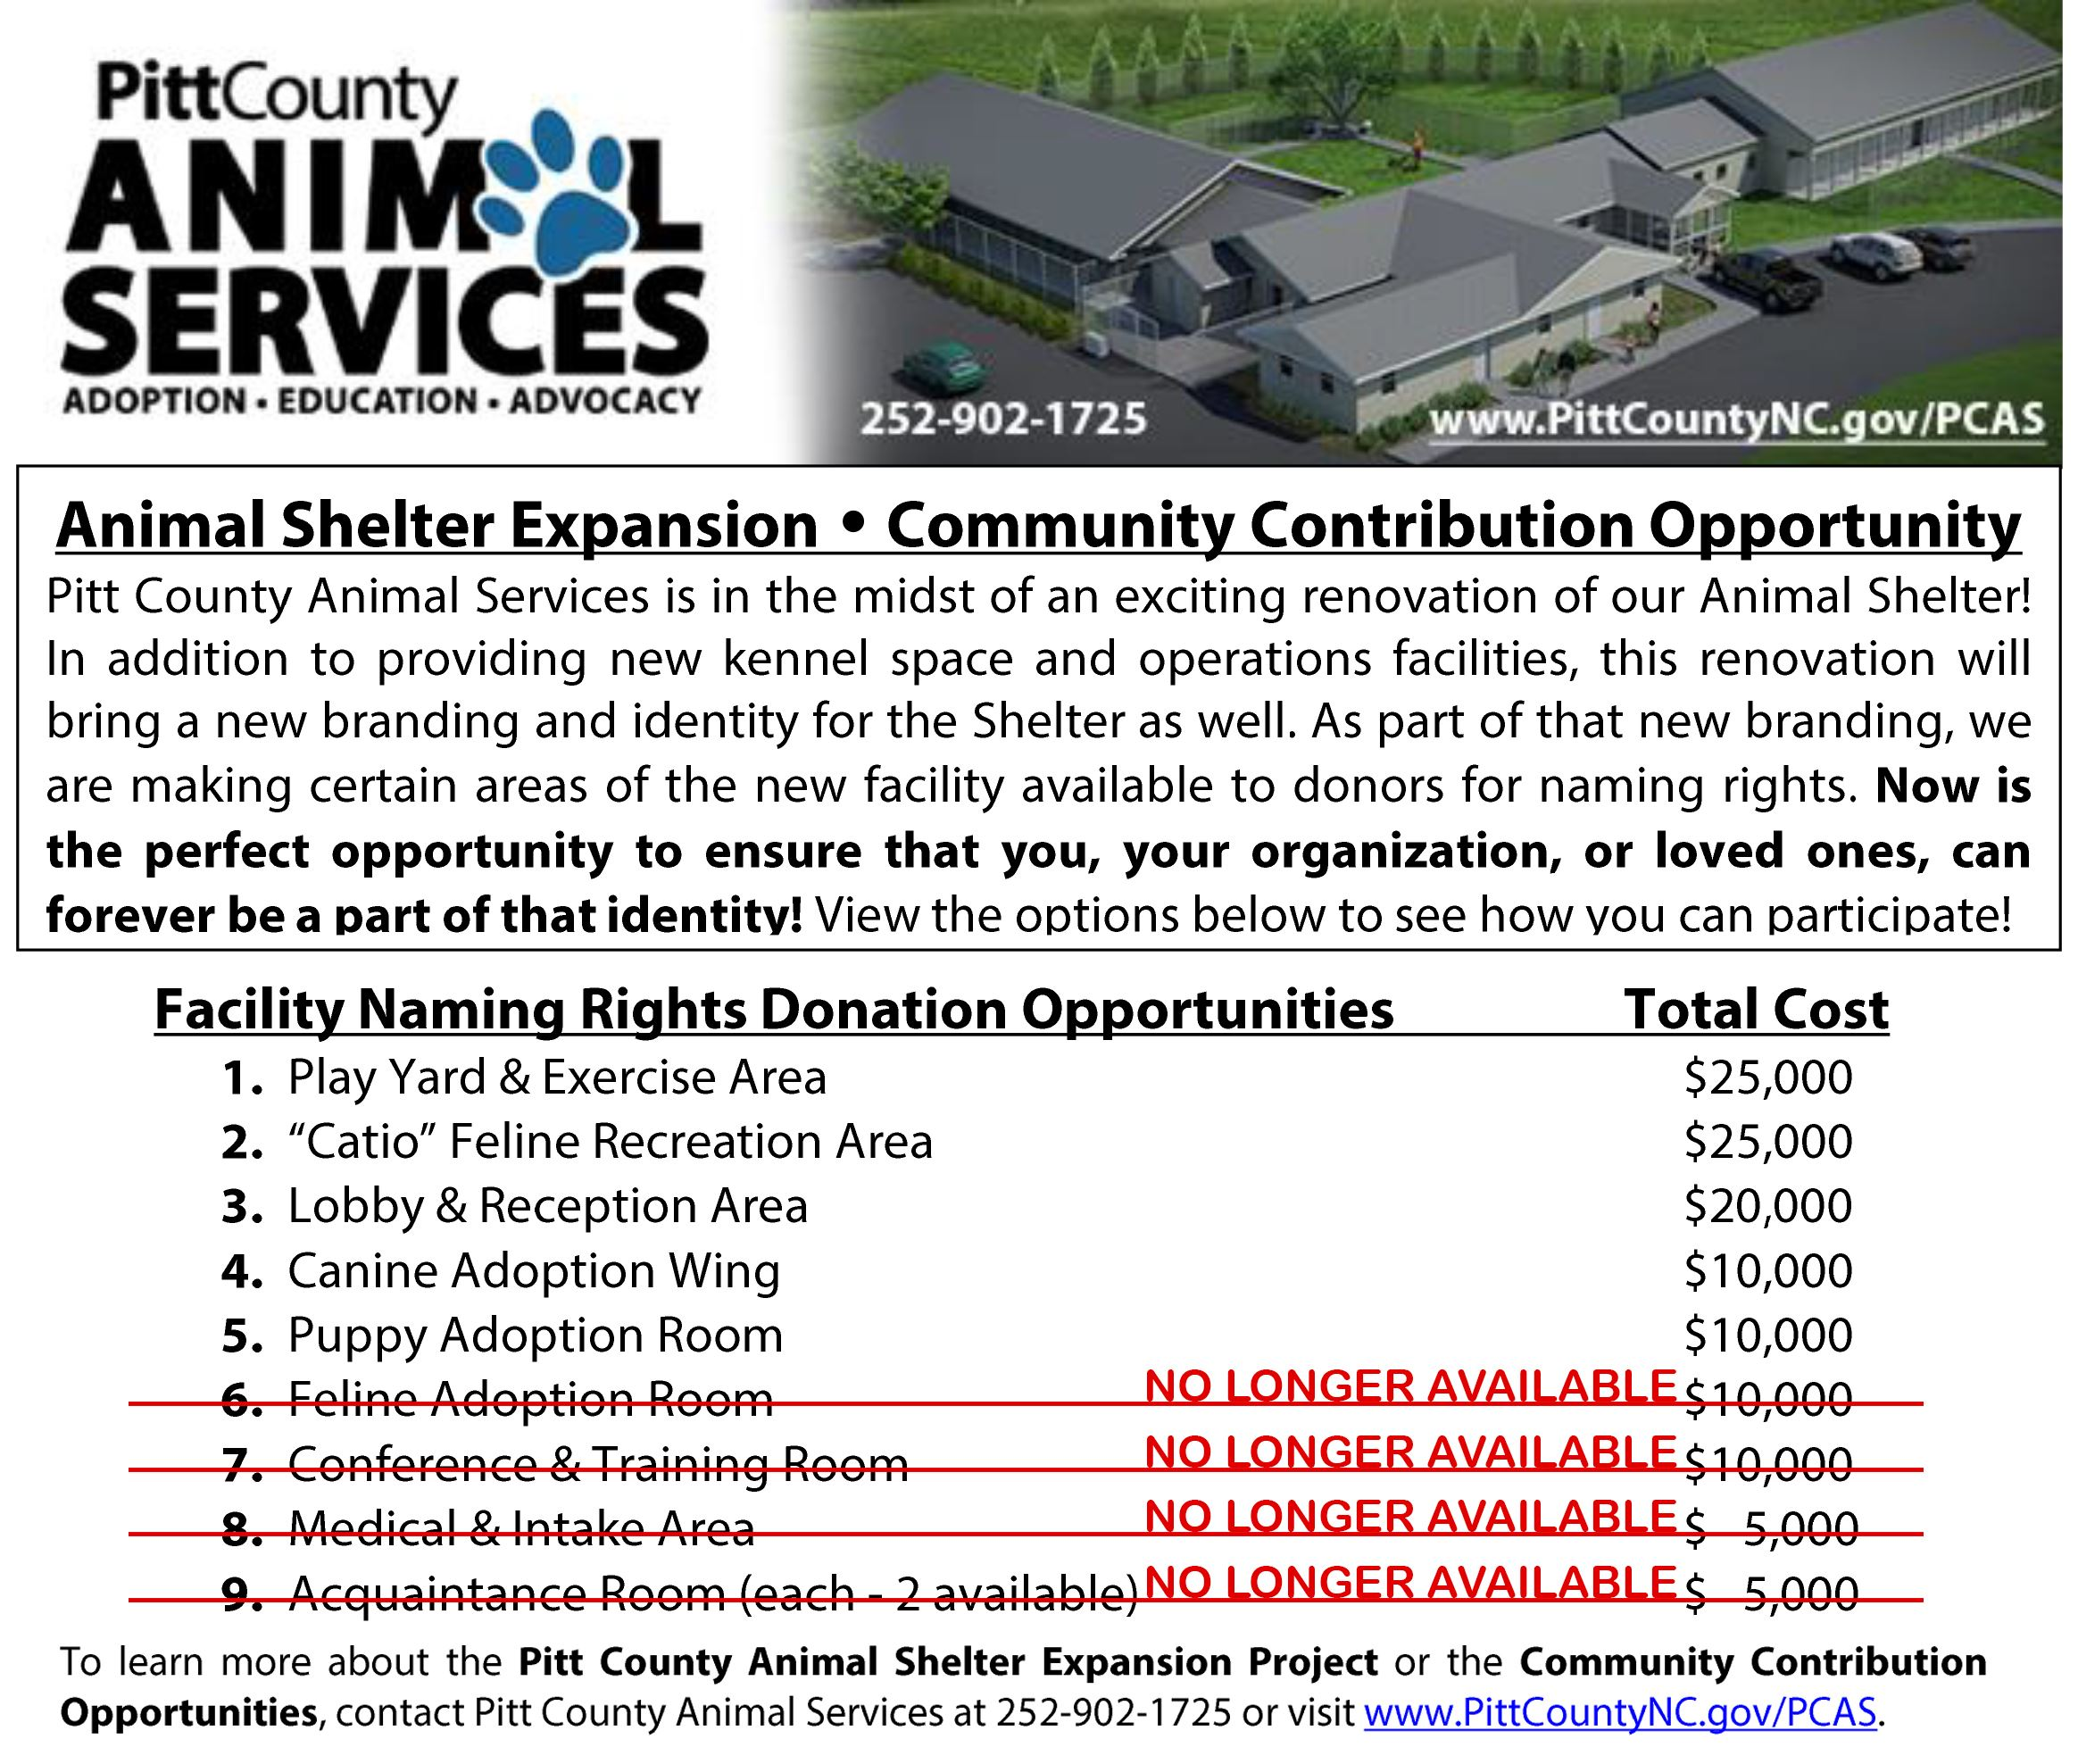 Animal Shelter Expansion Community Contribution Project Opportunities